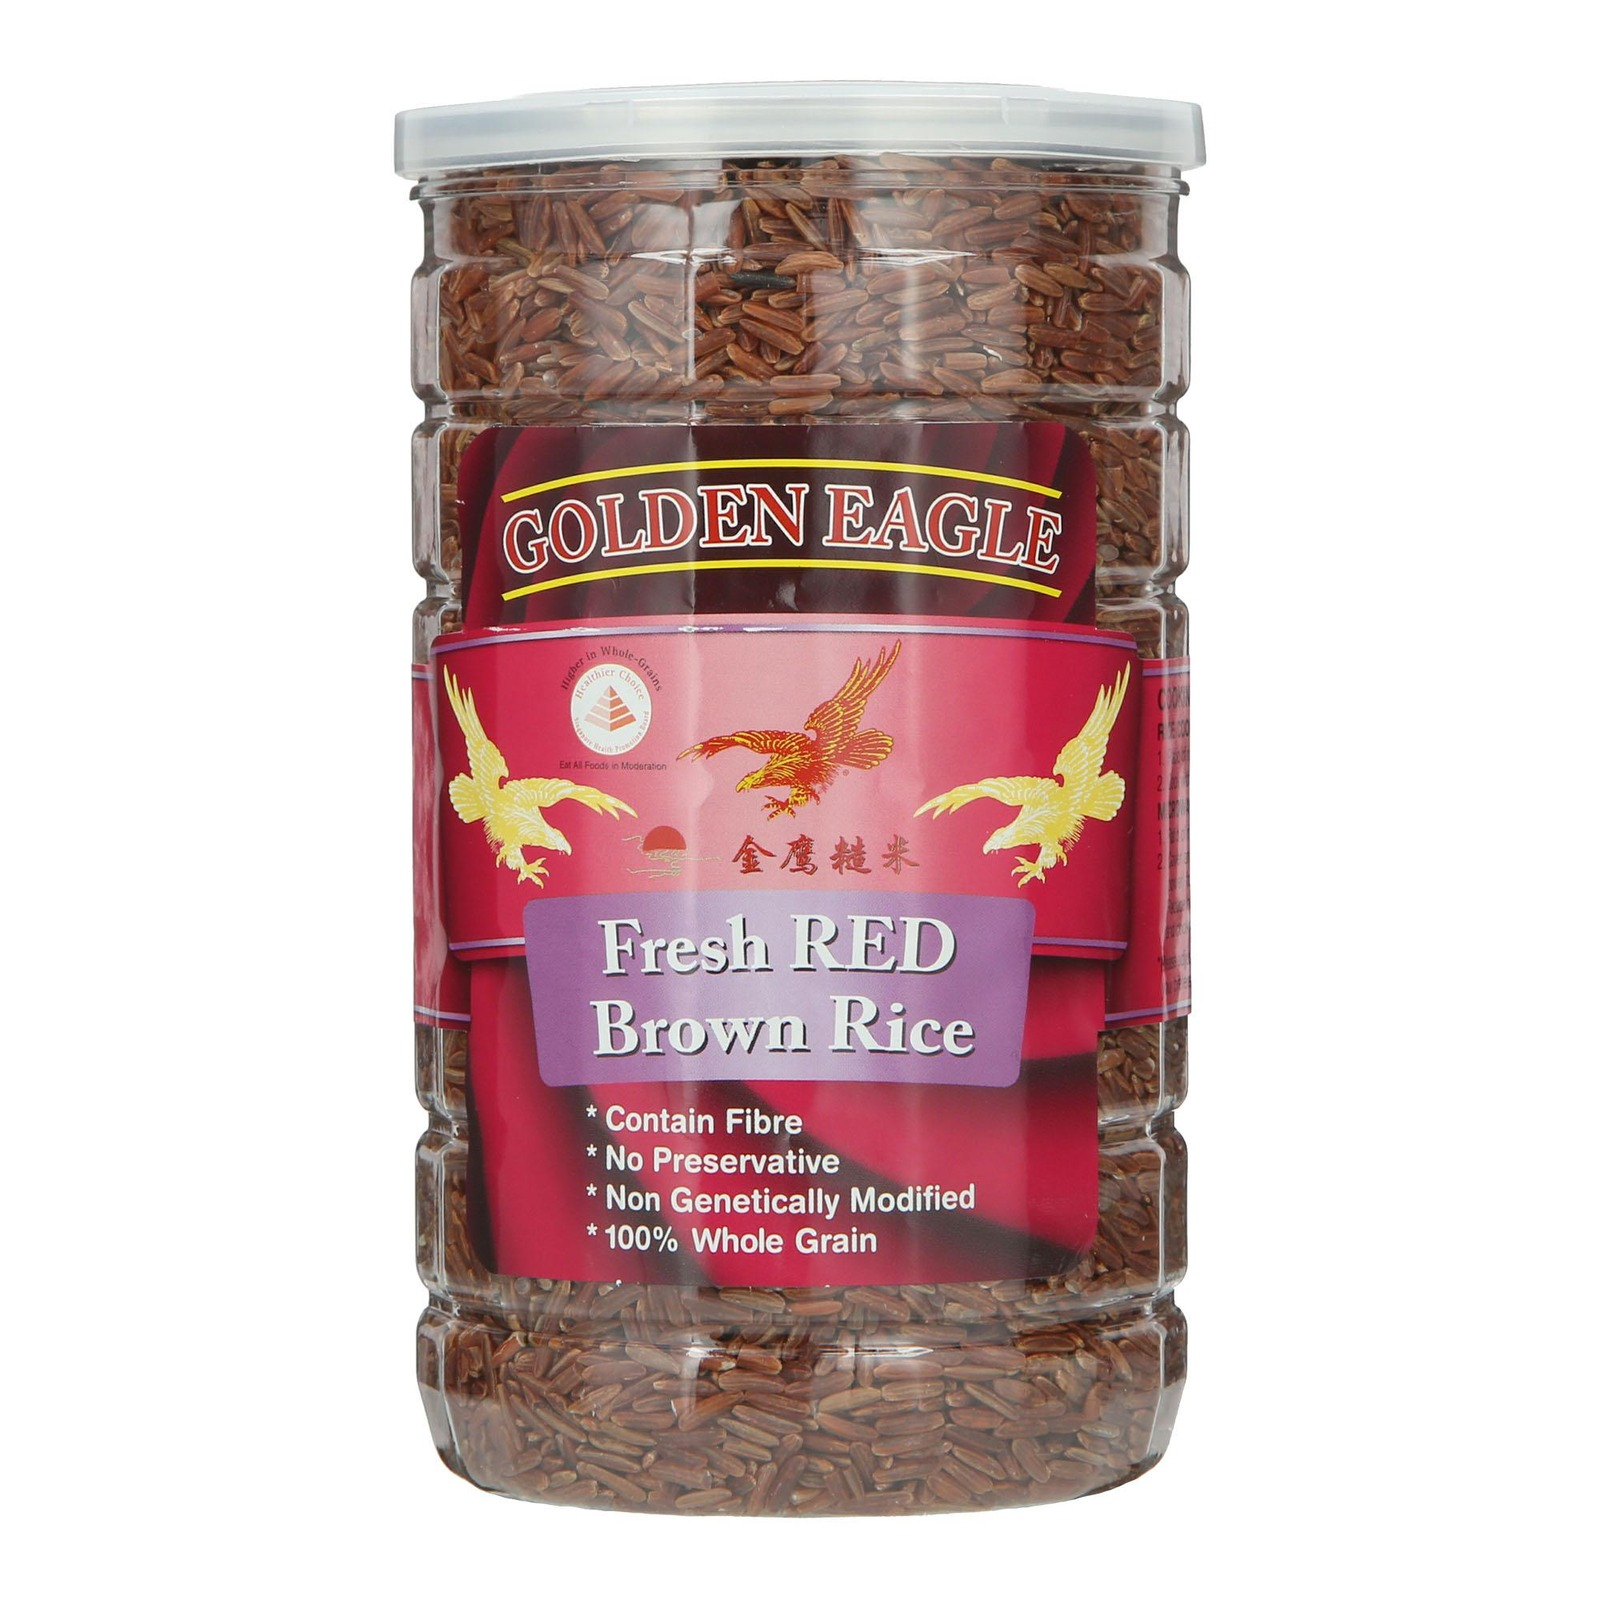 Golden Eagle Fresh Red Brown Rice